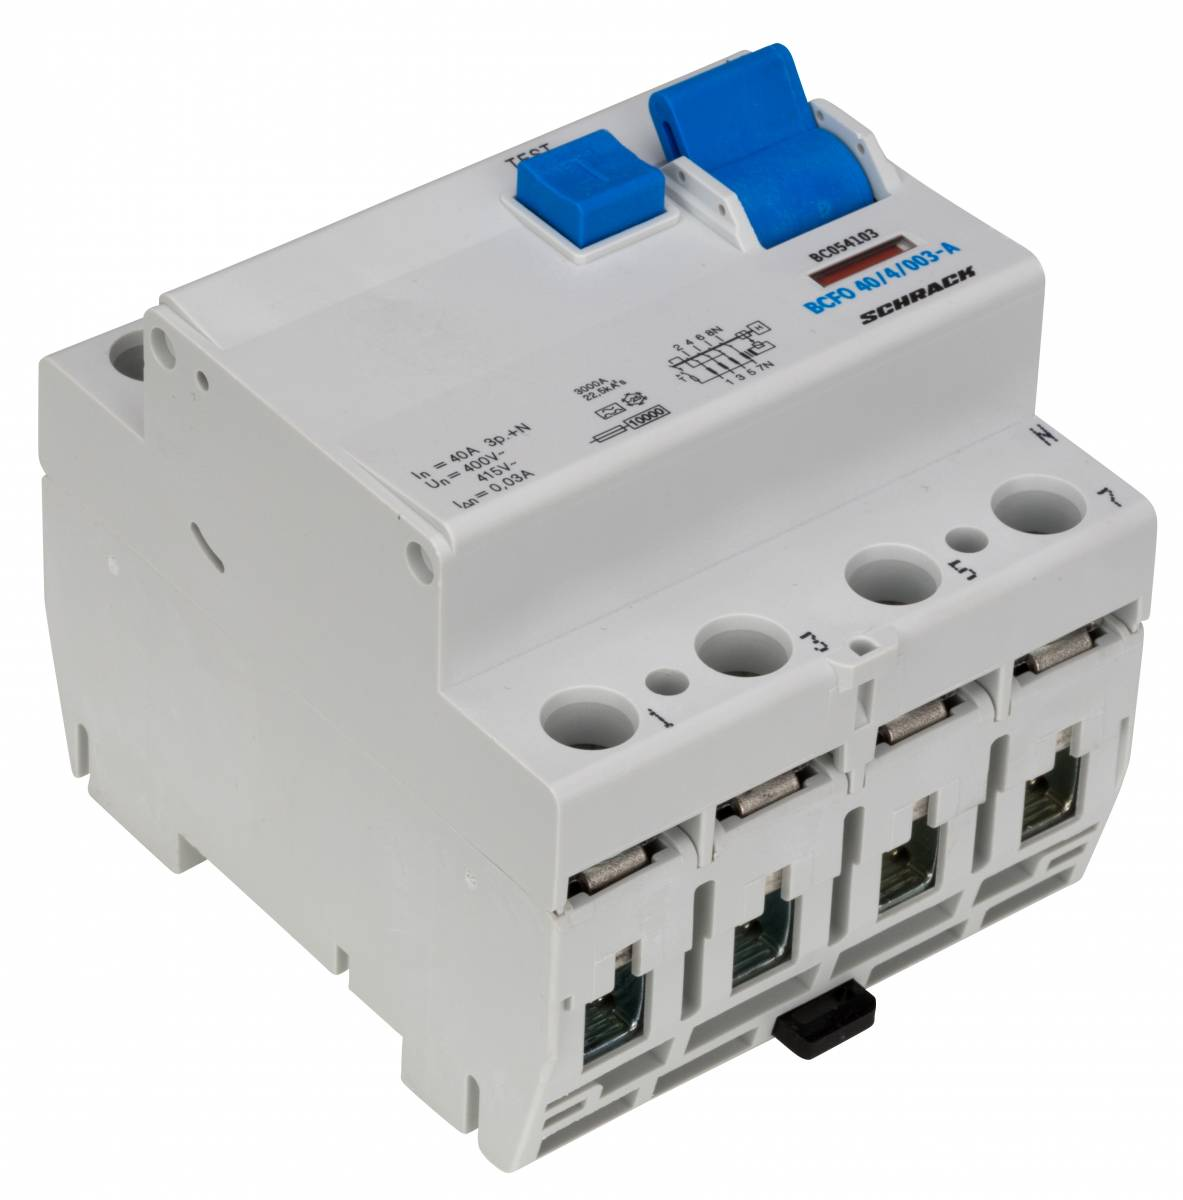 Residual current circuit breaker, 40A, 4-pole,30mA, type A